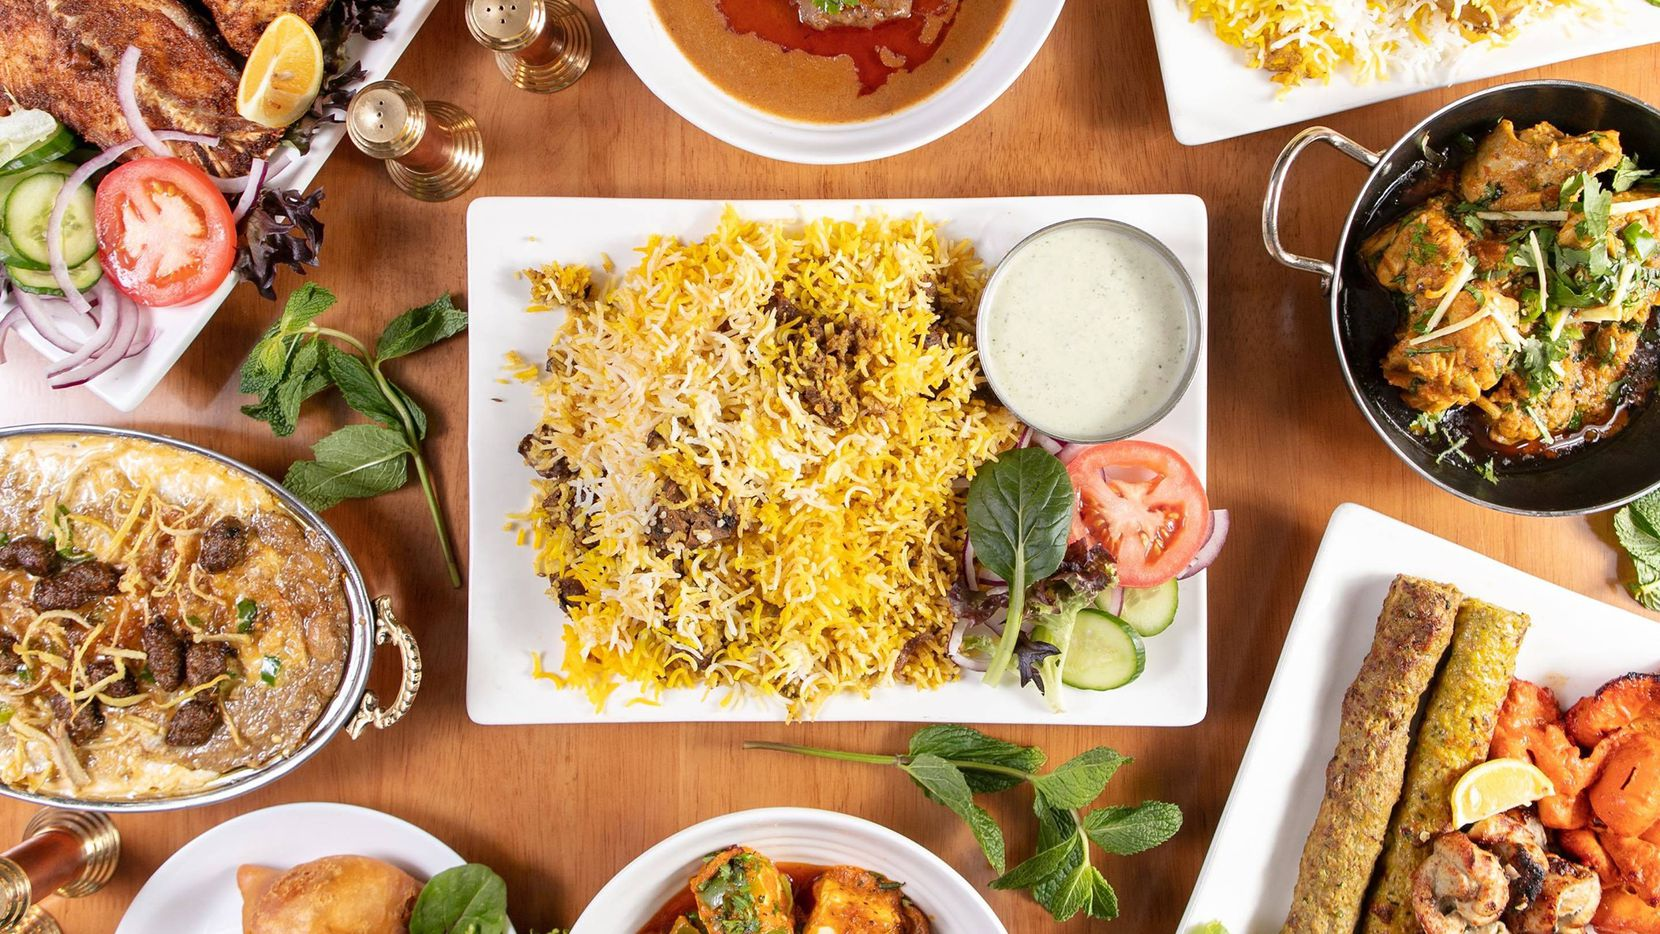 Baba Ali's Kitchen opened in January near Grandscape on The Colony and Lewisville line.